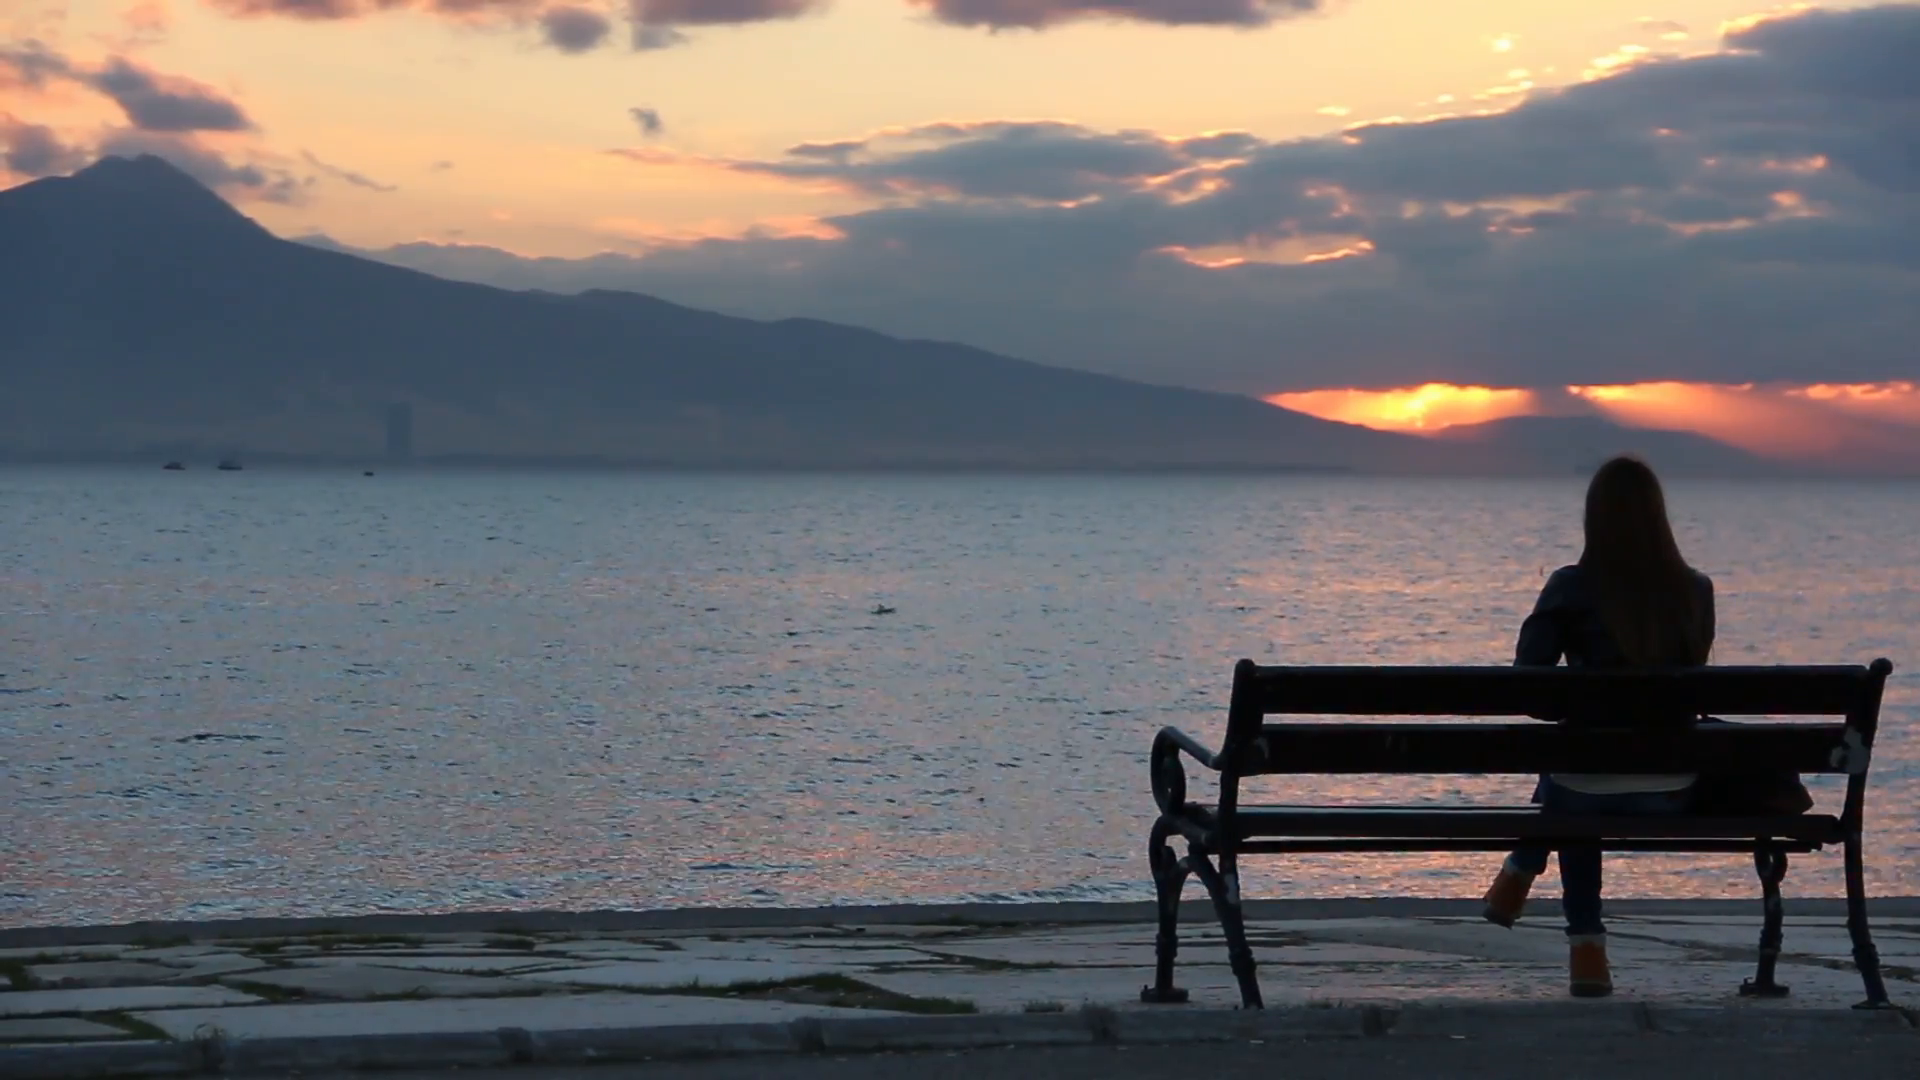 Lonely Girl Sitting on Bench At Sunset Stock Video Footage - Videoblocks